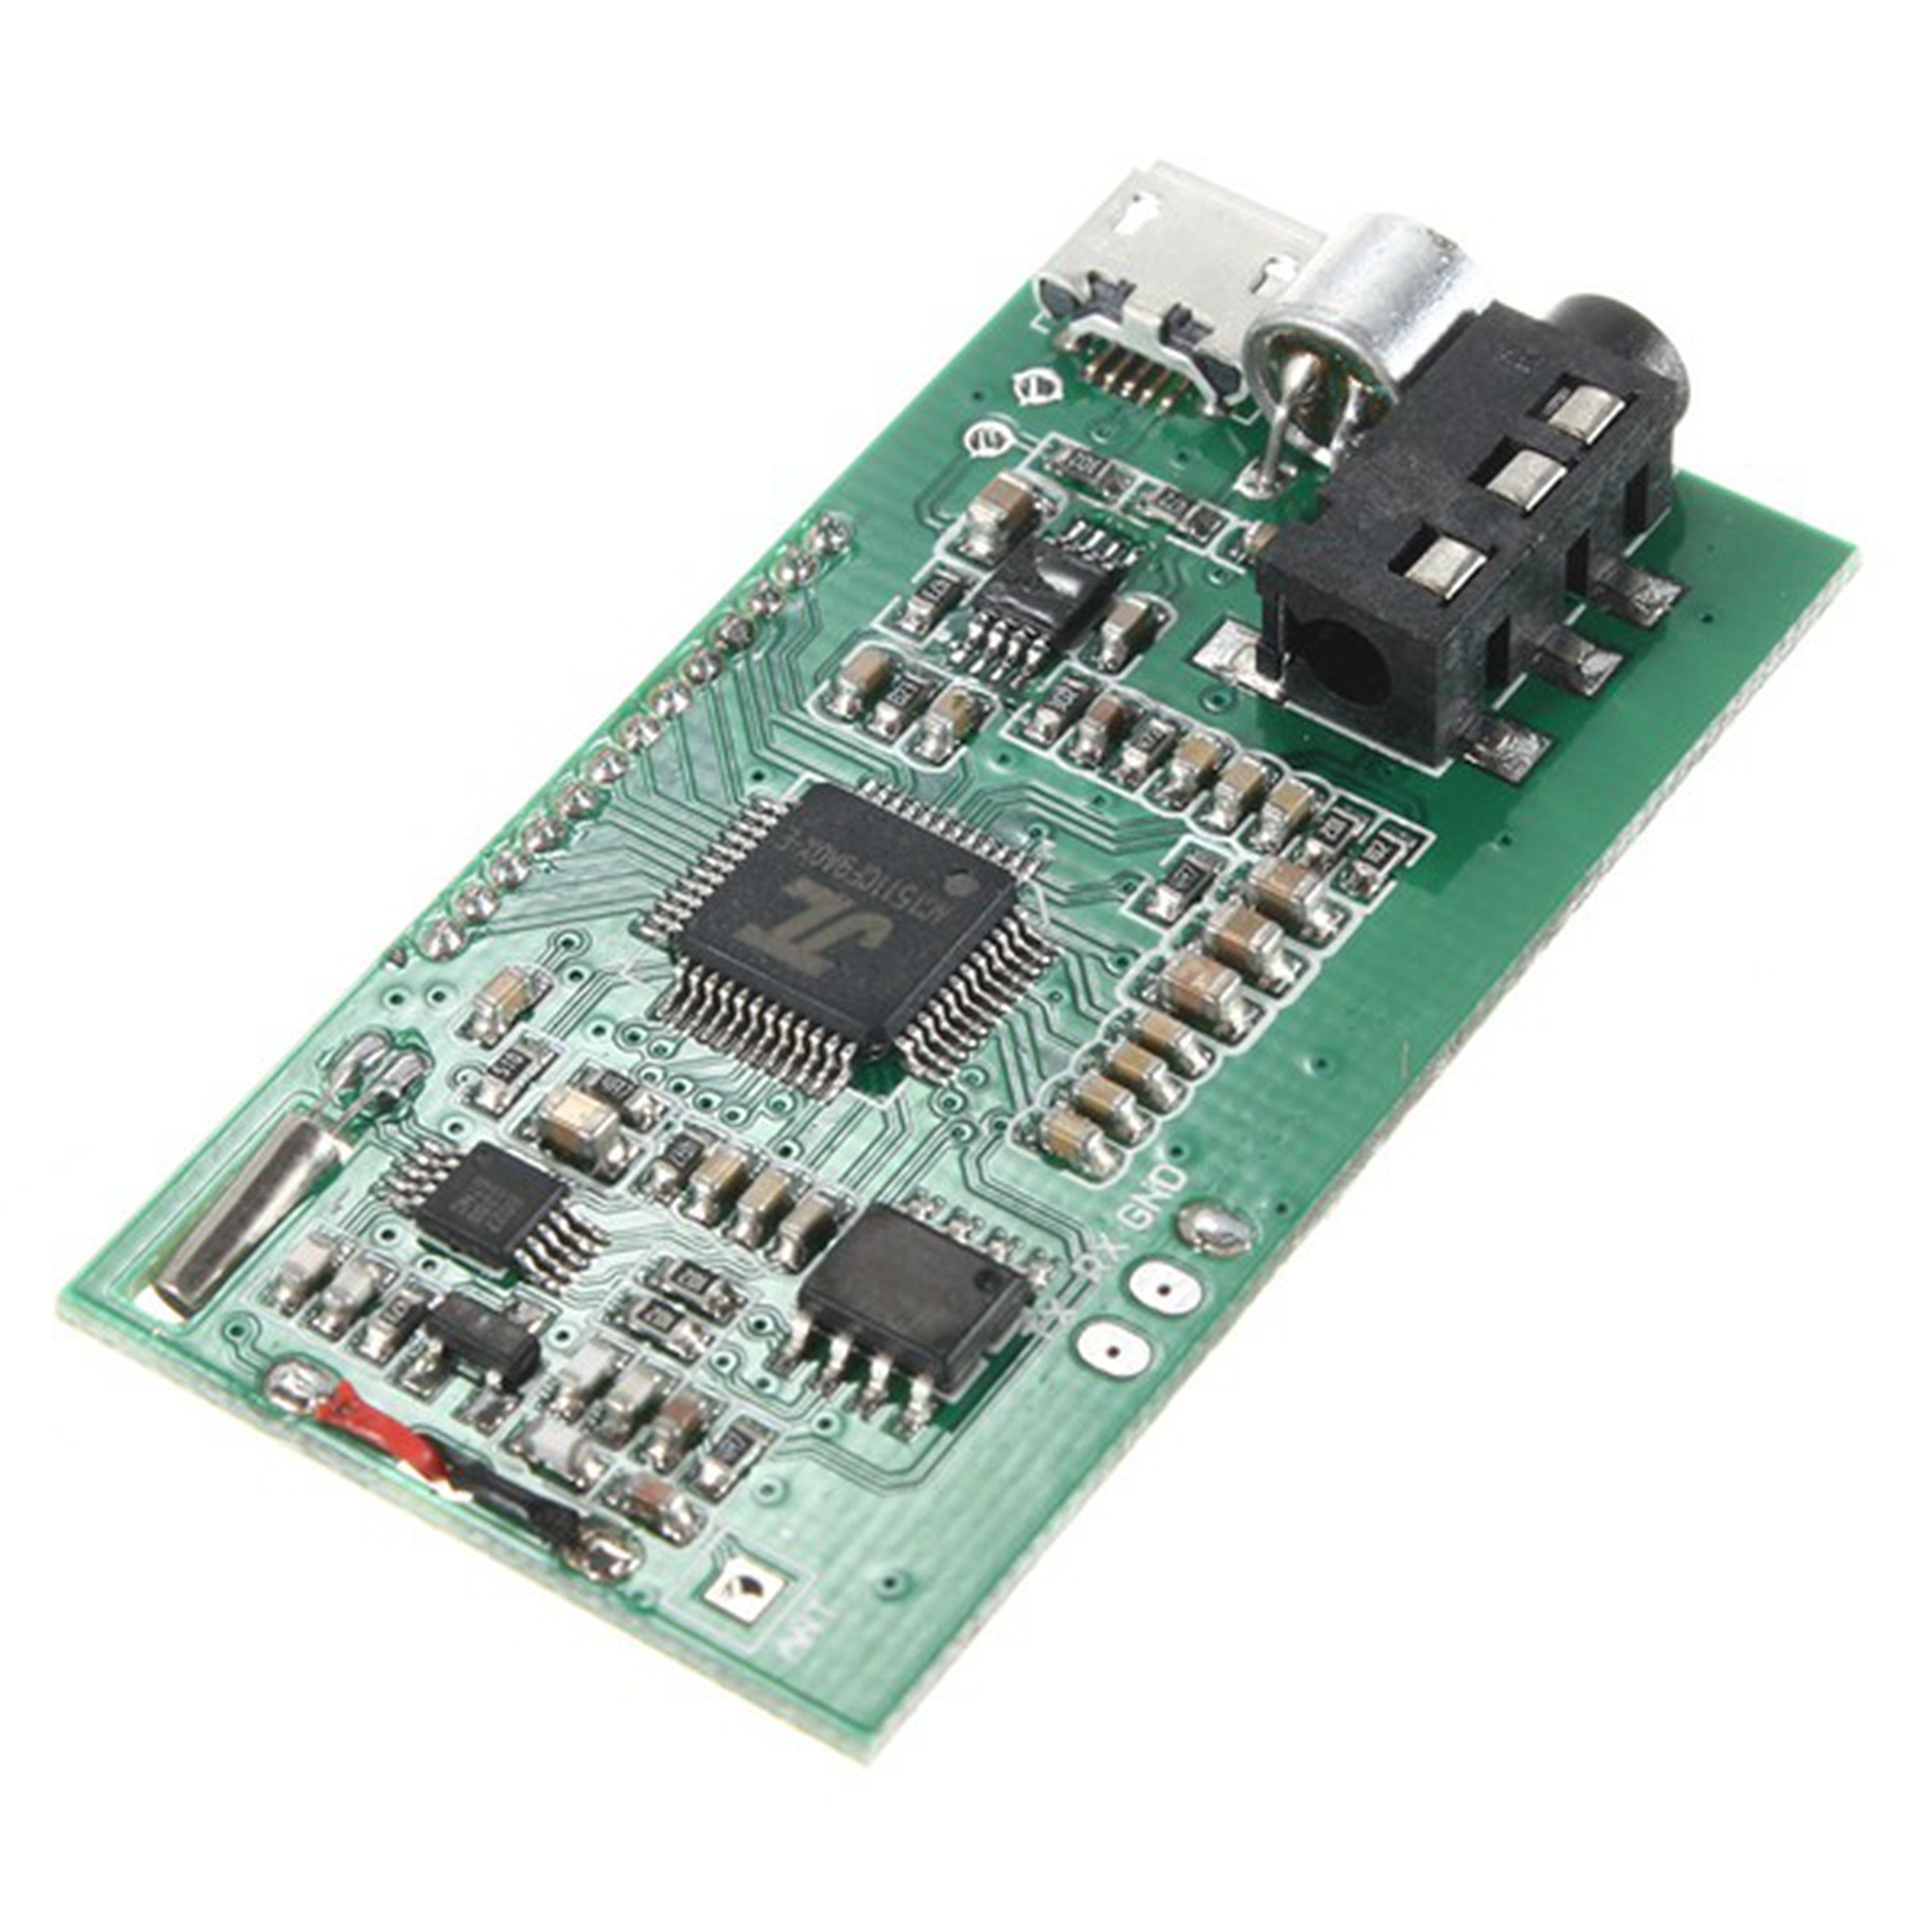 Dsp Pll Fm Transmitter Module Usb Aux In 100mw From Spa Single Chip For Short Range Application 6